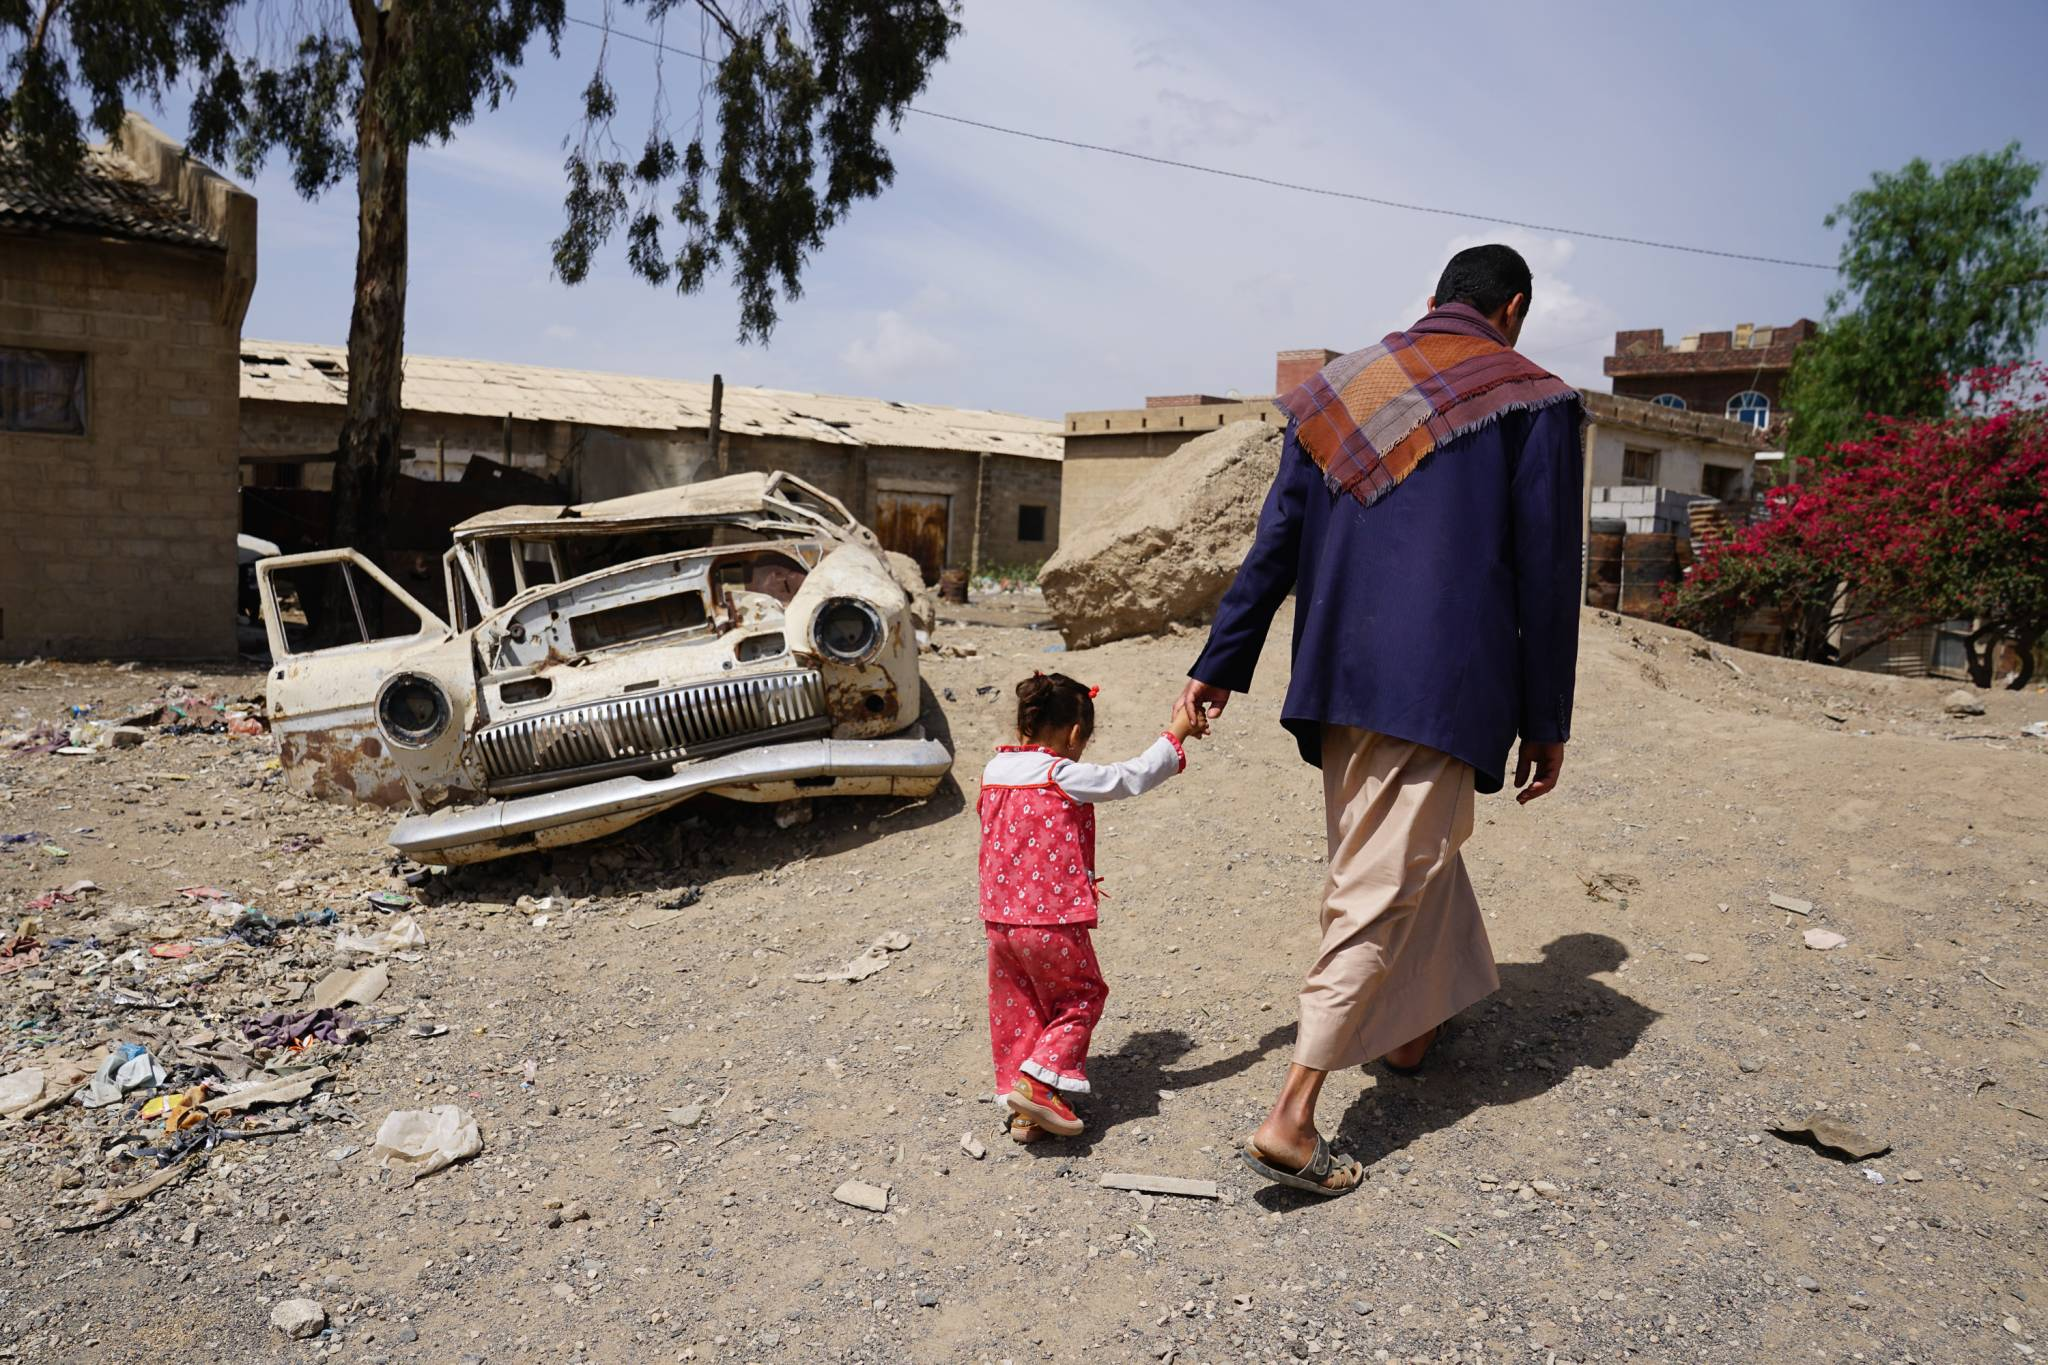 HARAT AL- MASNA'A, YEMEN - 28 APRIL 2017.   Abdellatif Allami walks with his 3-year-old daughter Sara in the Harat Al-Masna'a slum in Sana'a. The slum sits next to a former textile factory and hosts 231 families of former factory workers. The factory, which employed up to 1,600 workers, has been closed since 2005. The former workers used to receive a basic pension of around 30,000 Yemeni rials ($120) per month, but payments stopped seven months ago. Families now rely on donations to survive.